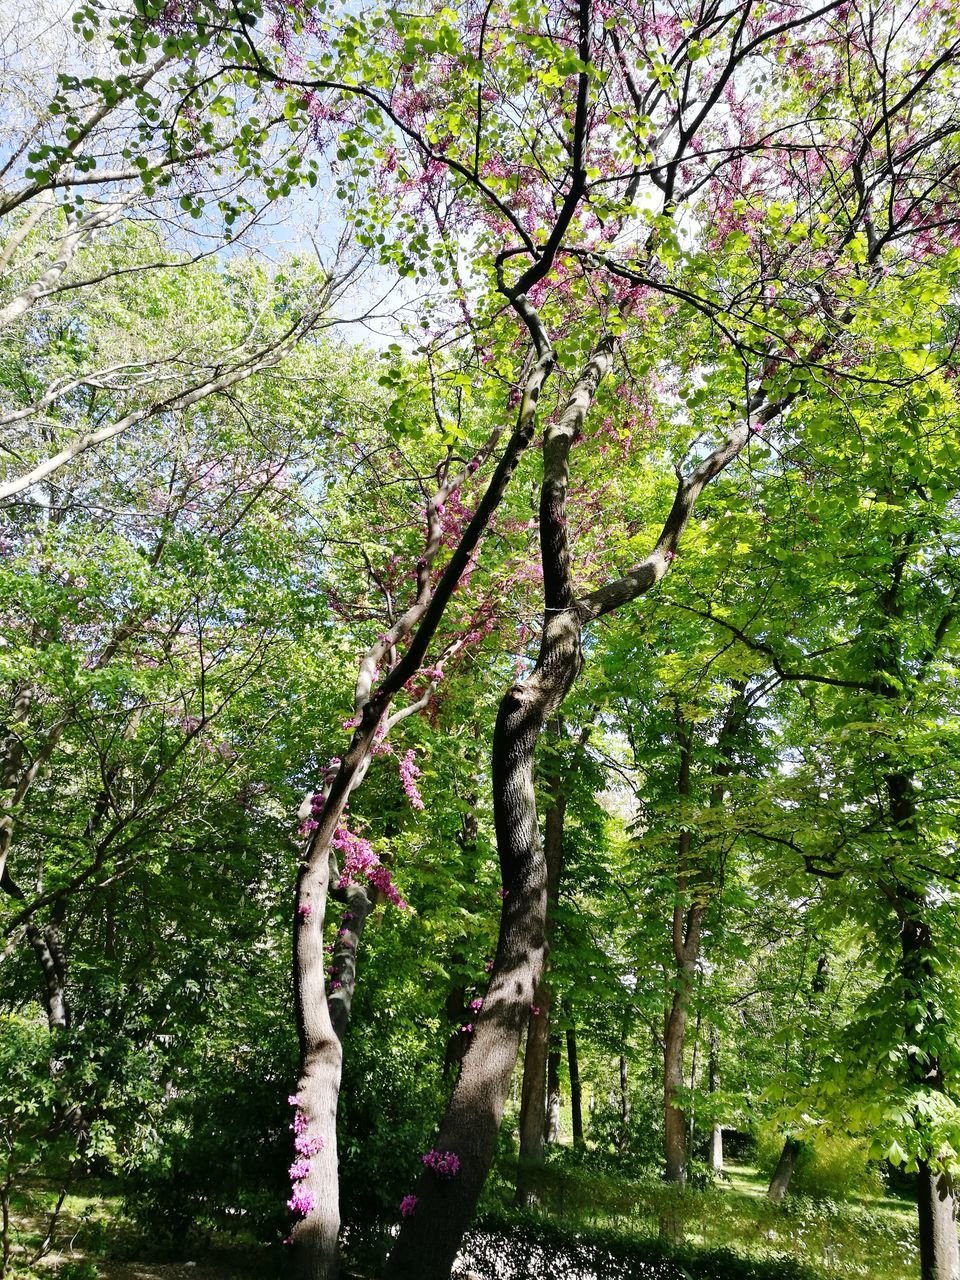 tree, branch, growth, nature, day, green color, tranquility, outdoors, beauty in nature, no people, low angle view, tree trunk